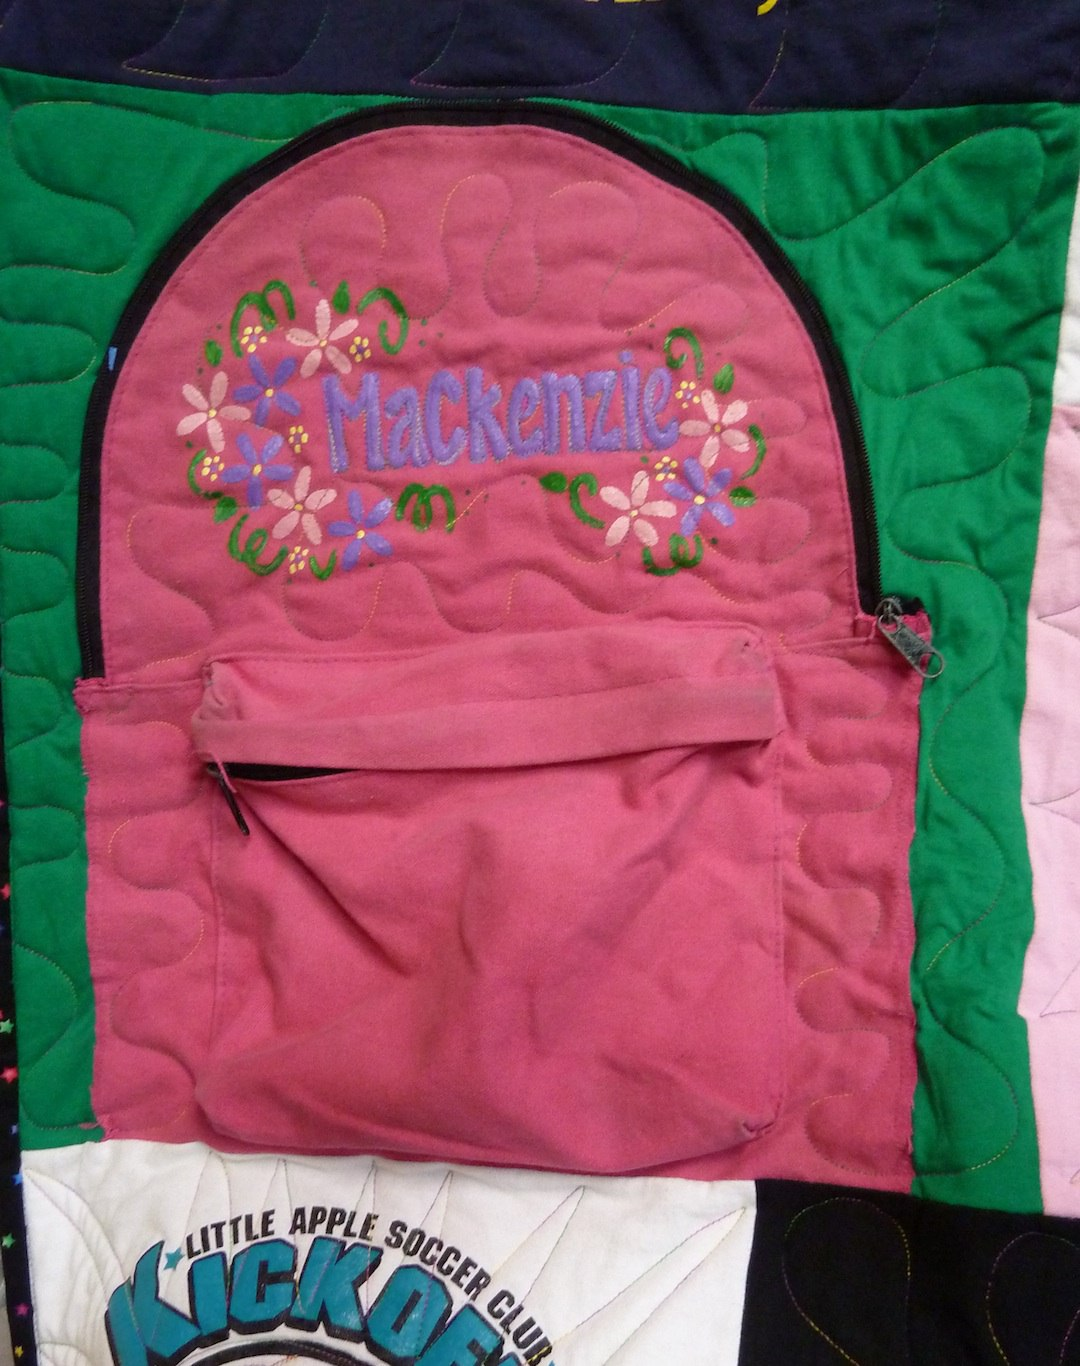 backpack used in a T-shirt quilt